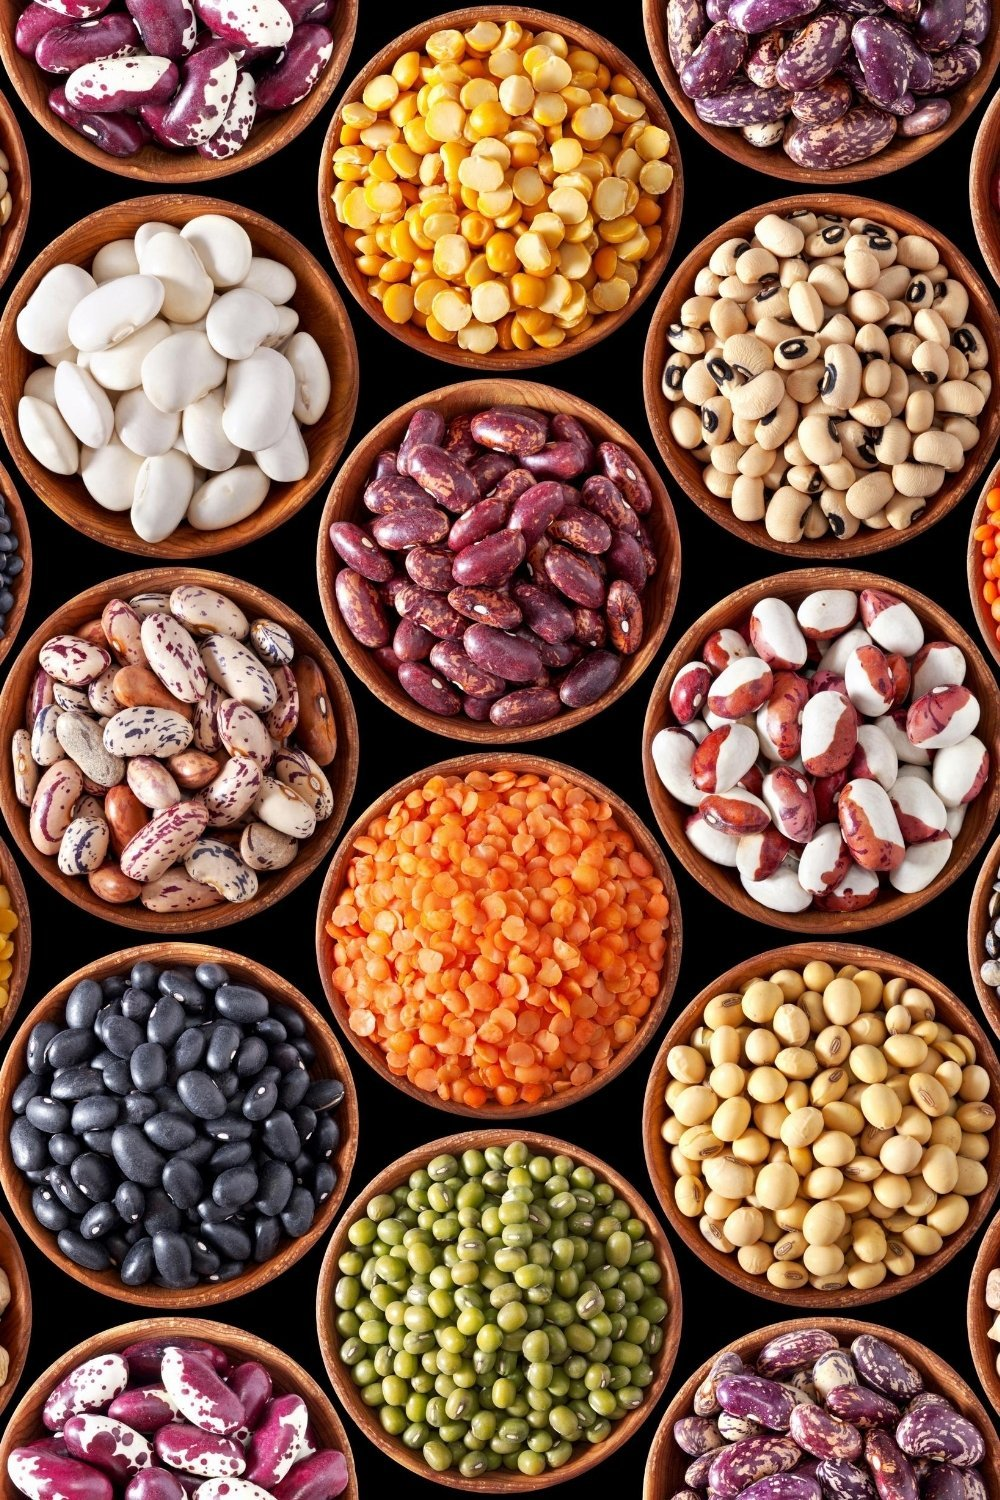 Naturally gluten free beans and legumes